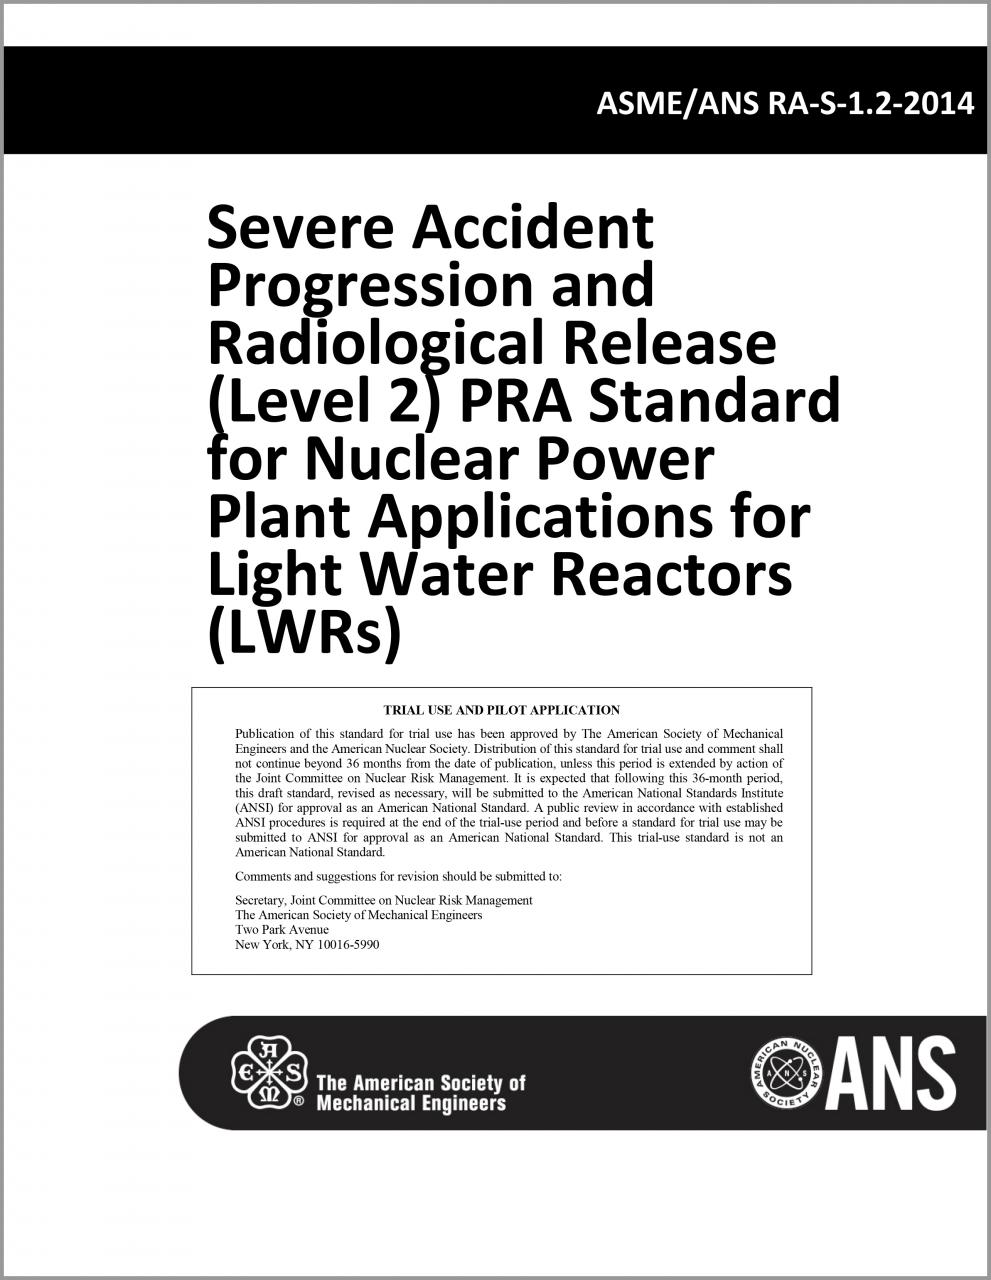 ASME/ANS RA-S-1.2-2014: Severe Accident Progression and